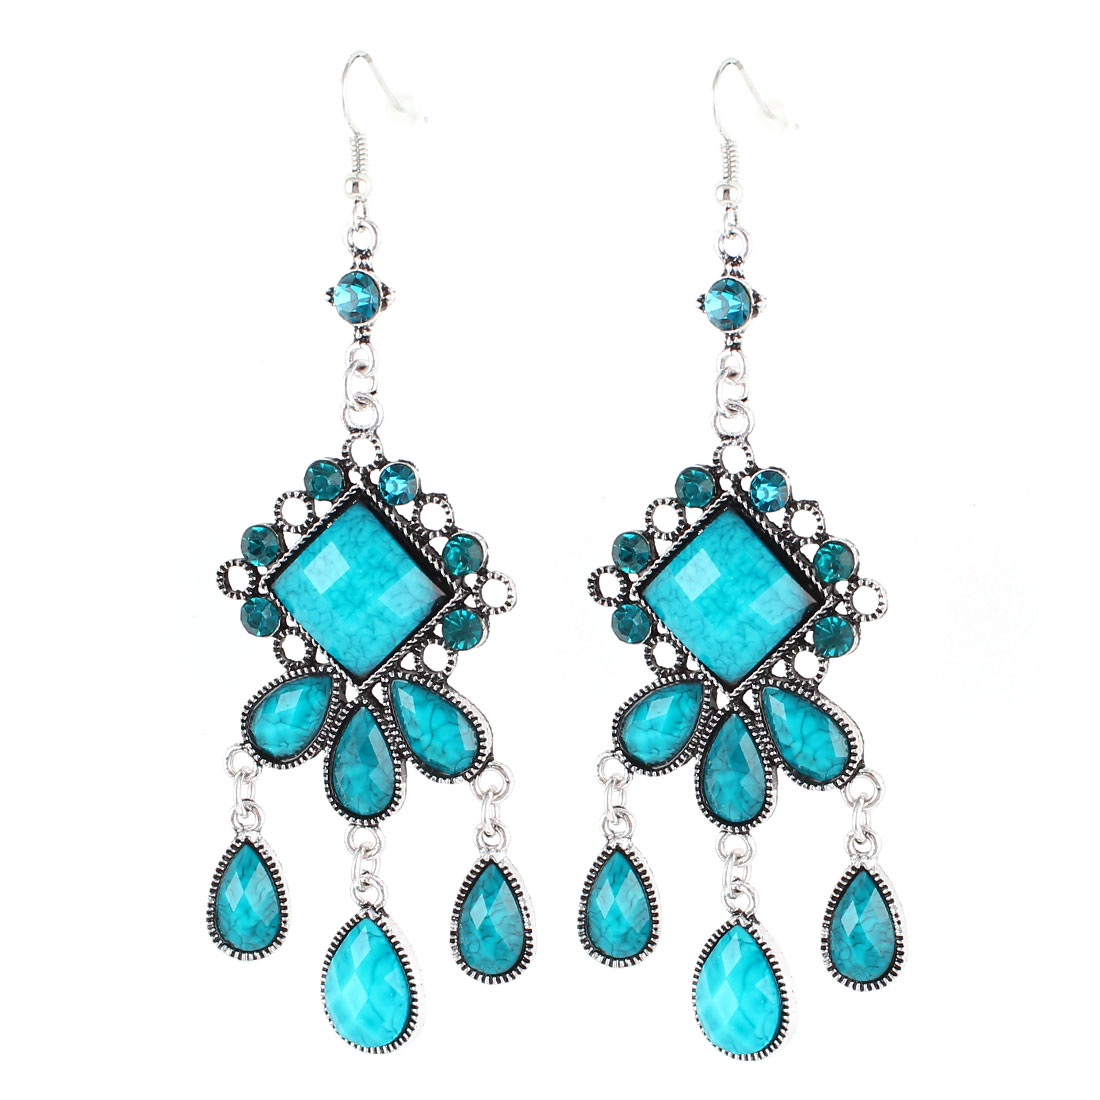 Unique Bargains Vintage Style Blue Waterdrop Bead Detailing Pendant Hook Earring Ear Drop Pair